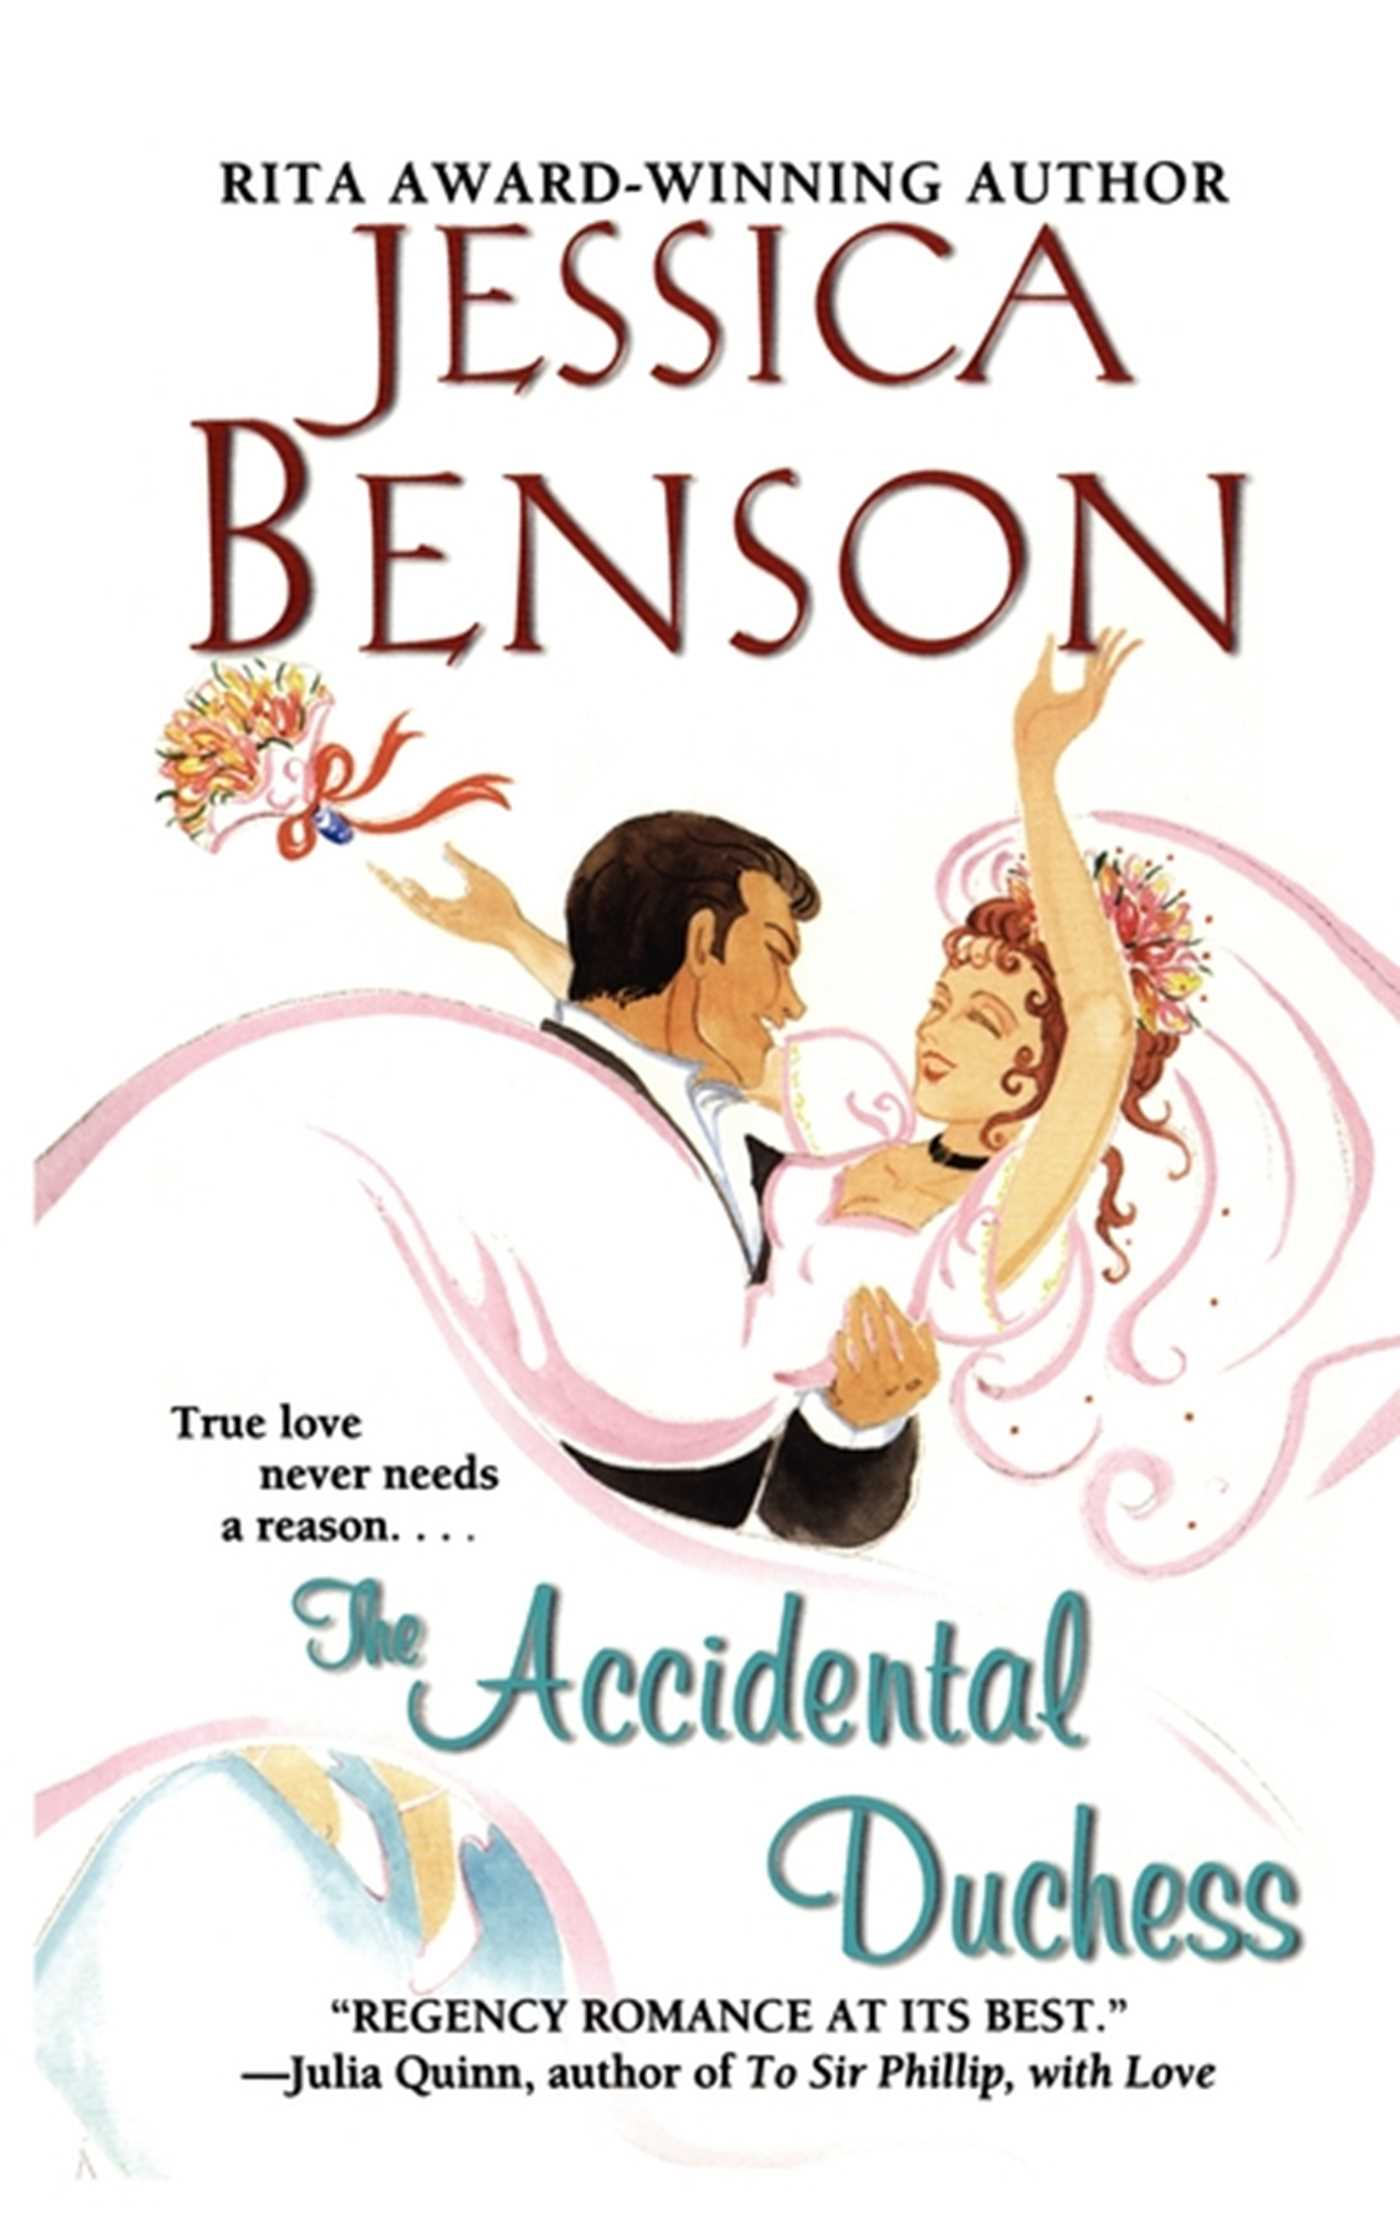 Jessica benson official publisher page simon schuster uk ebook 9781439187821 fandeluxe Ebook collections